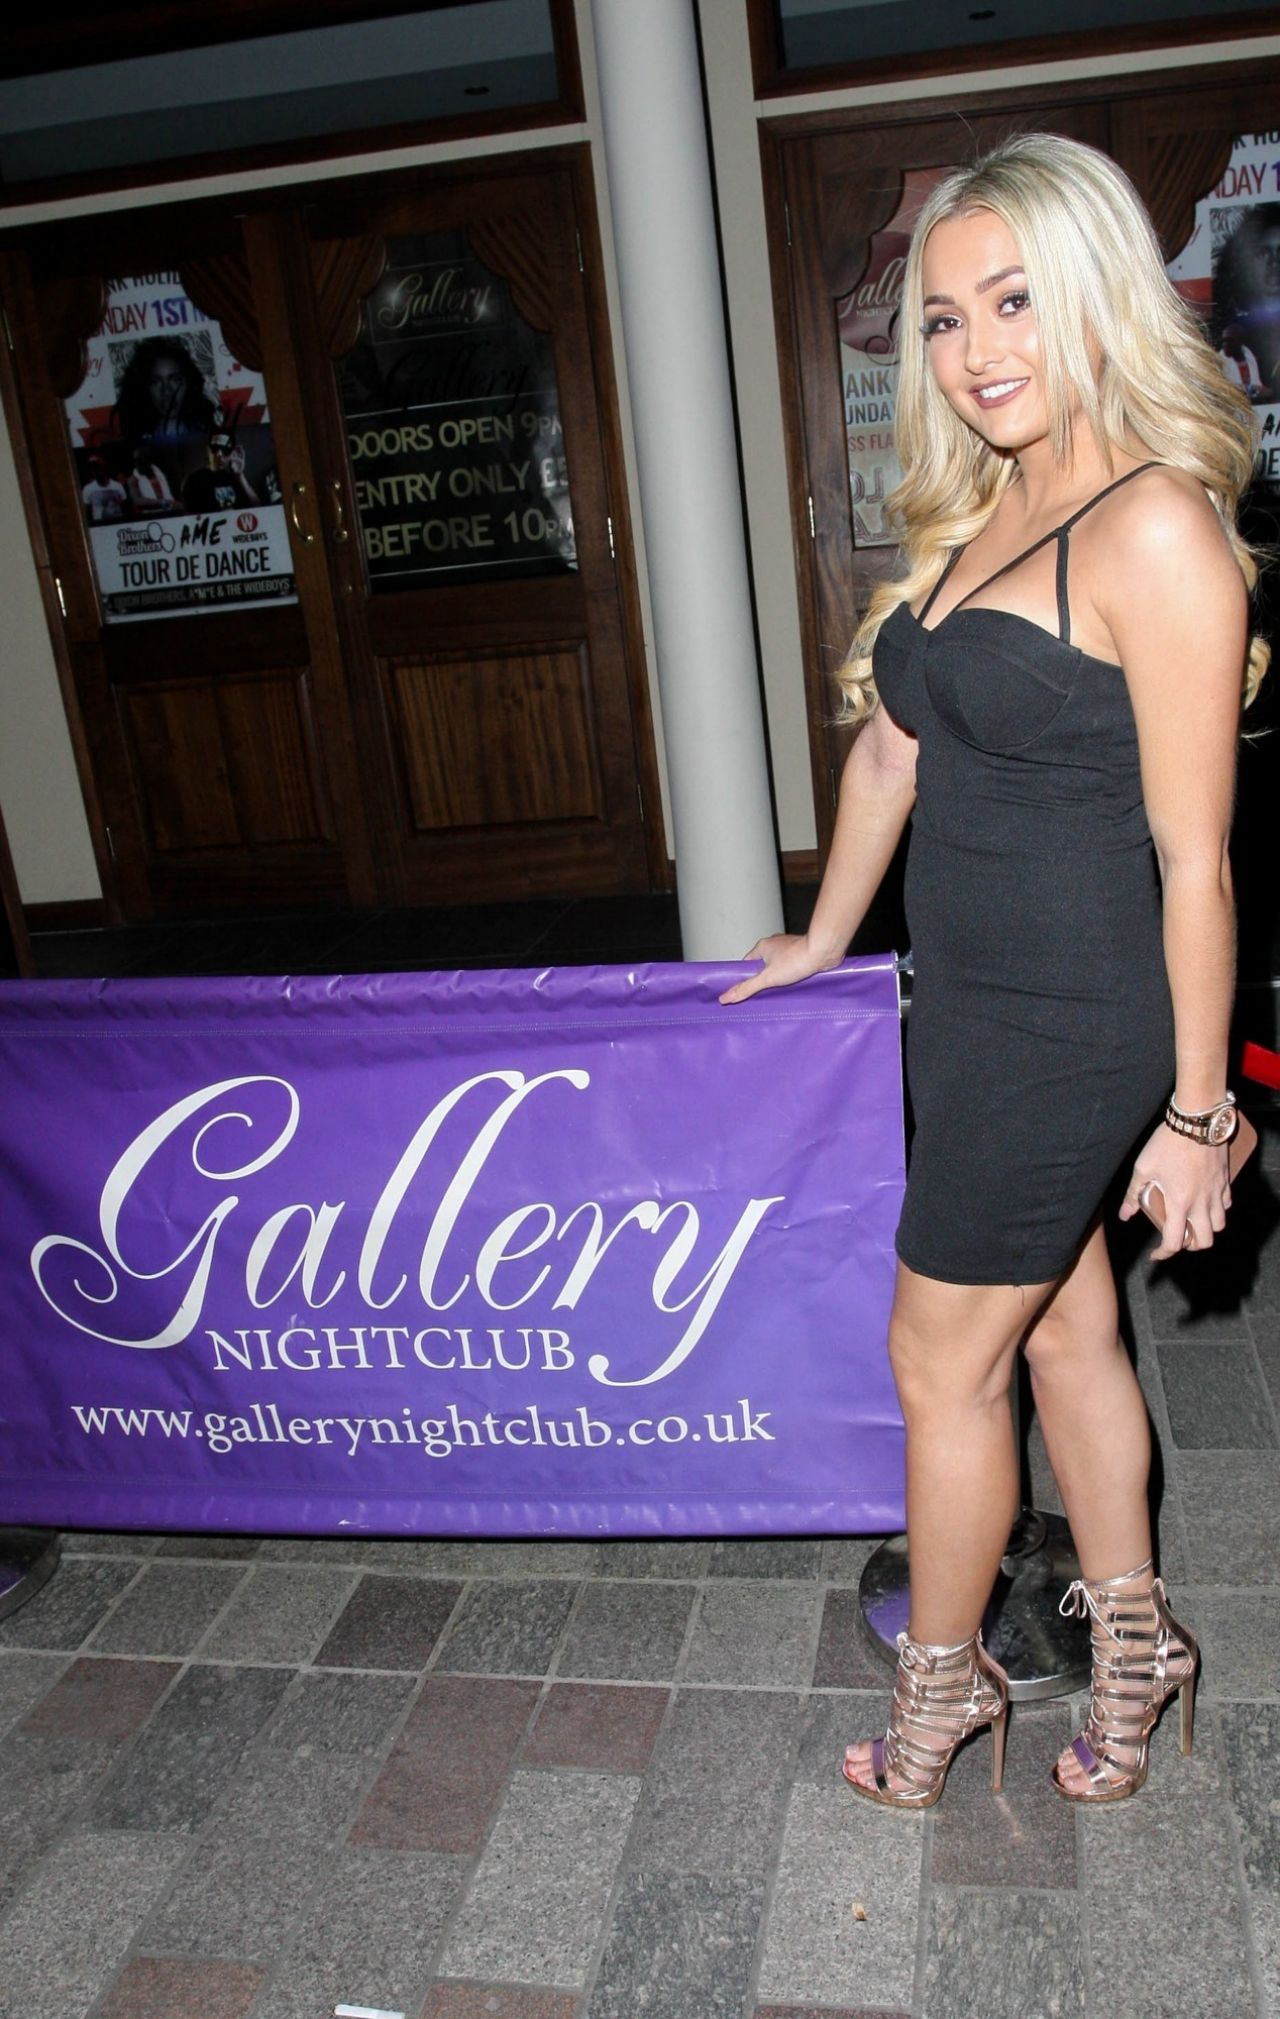 Lacey Fuller Hit Up Gallery Nightclub In Maidstone